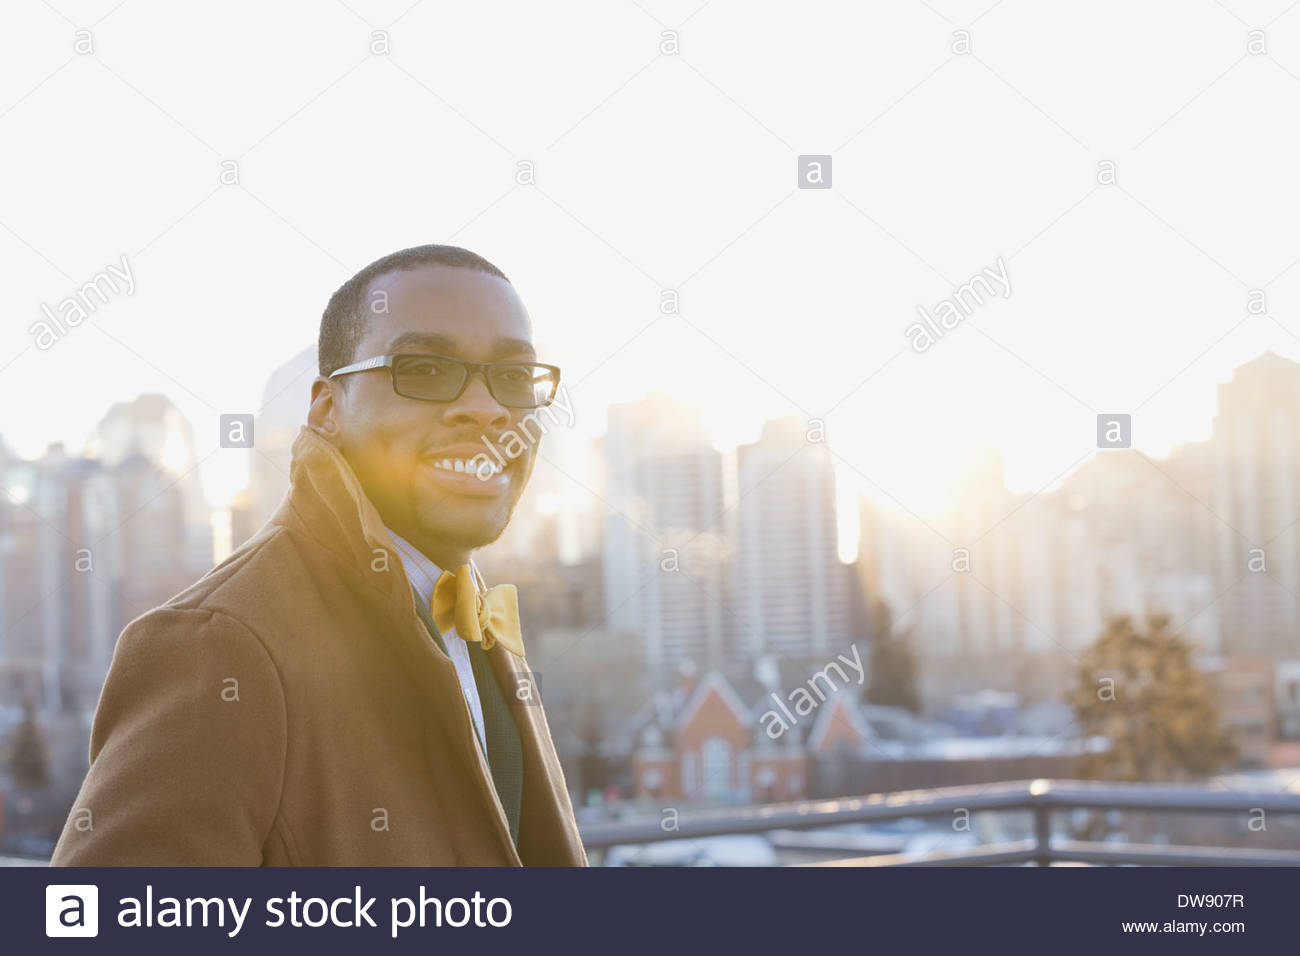 Portrait of smiling man against cityscape - Stock Image